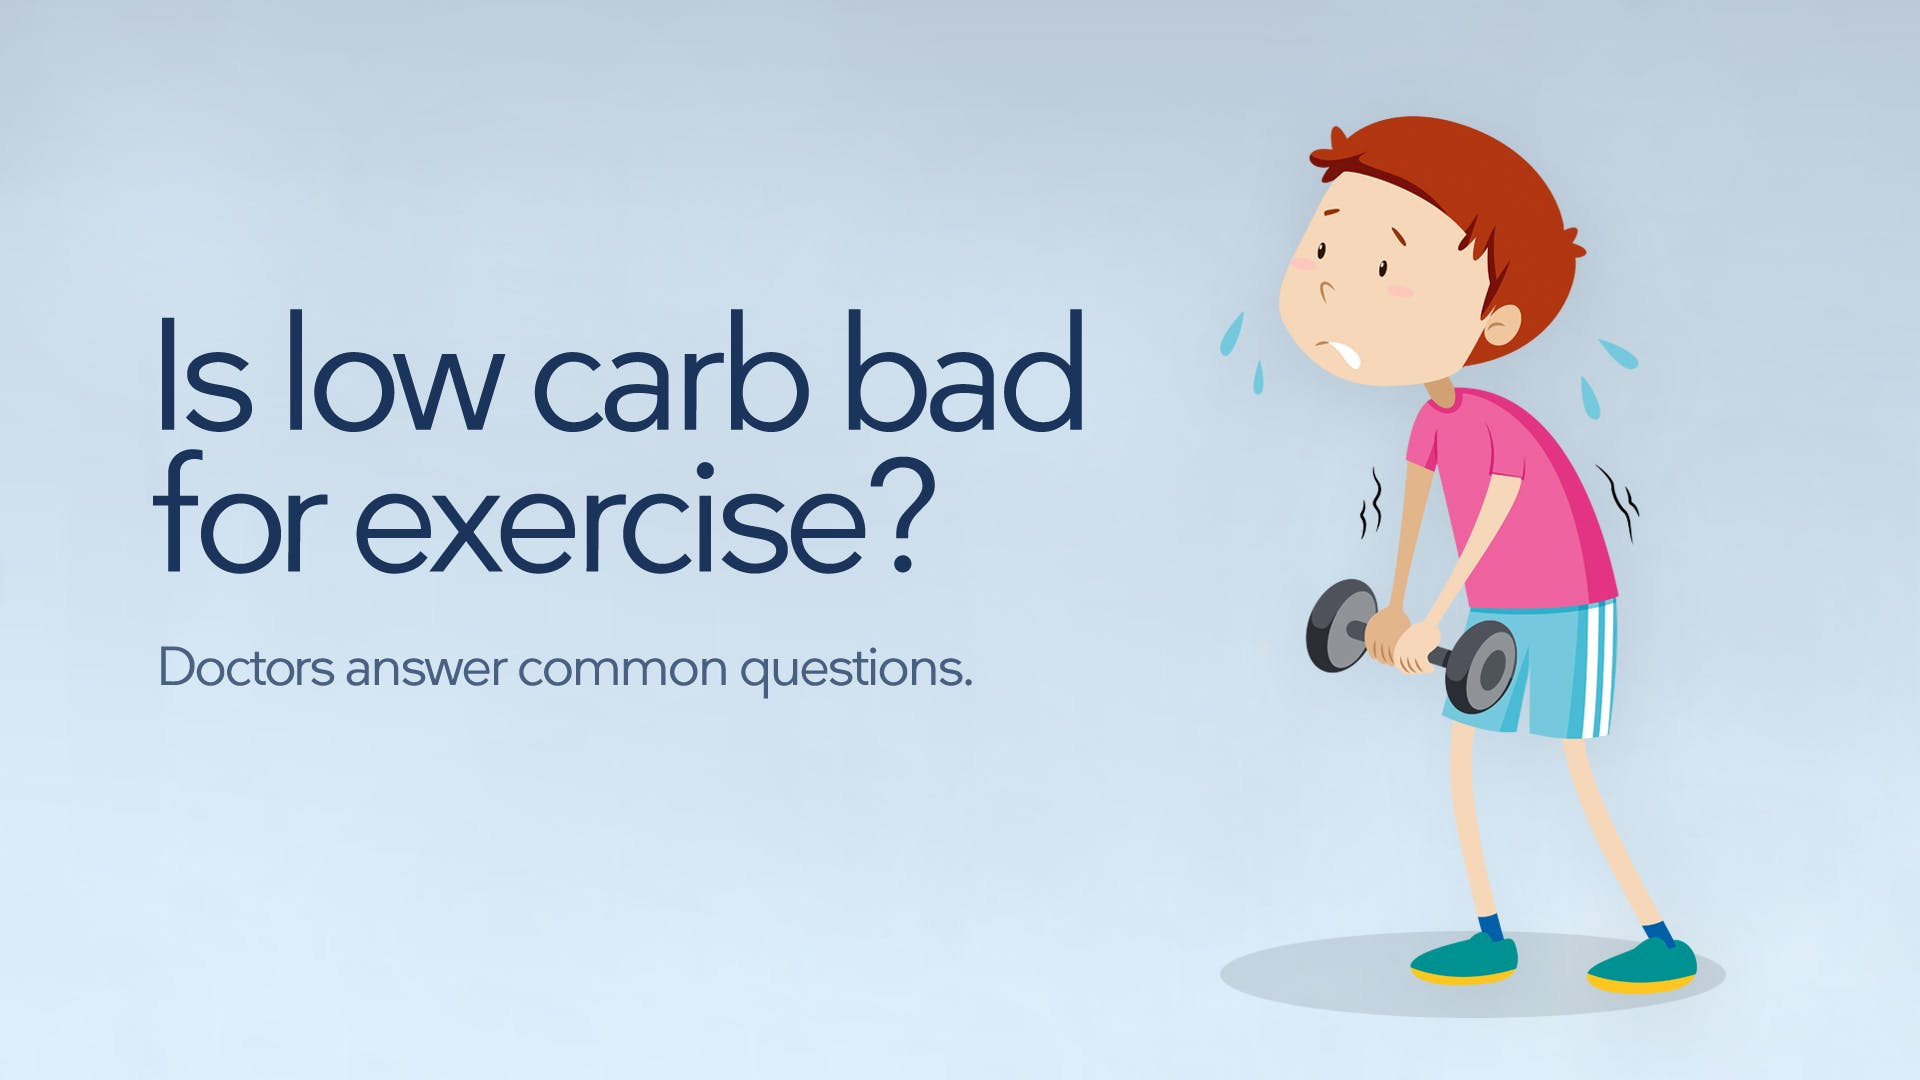 Is low carb bad for exercise?